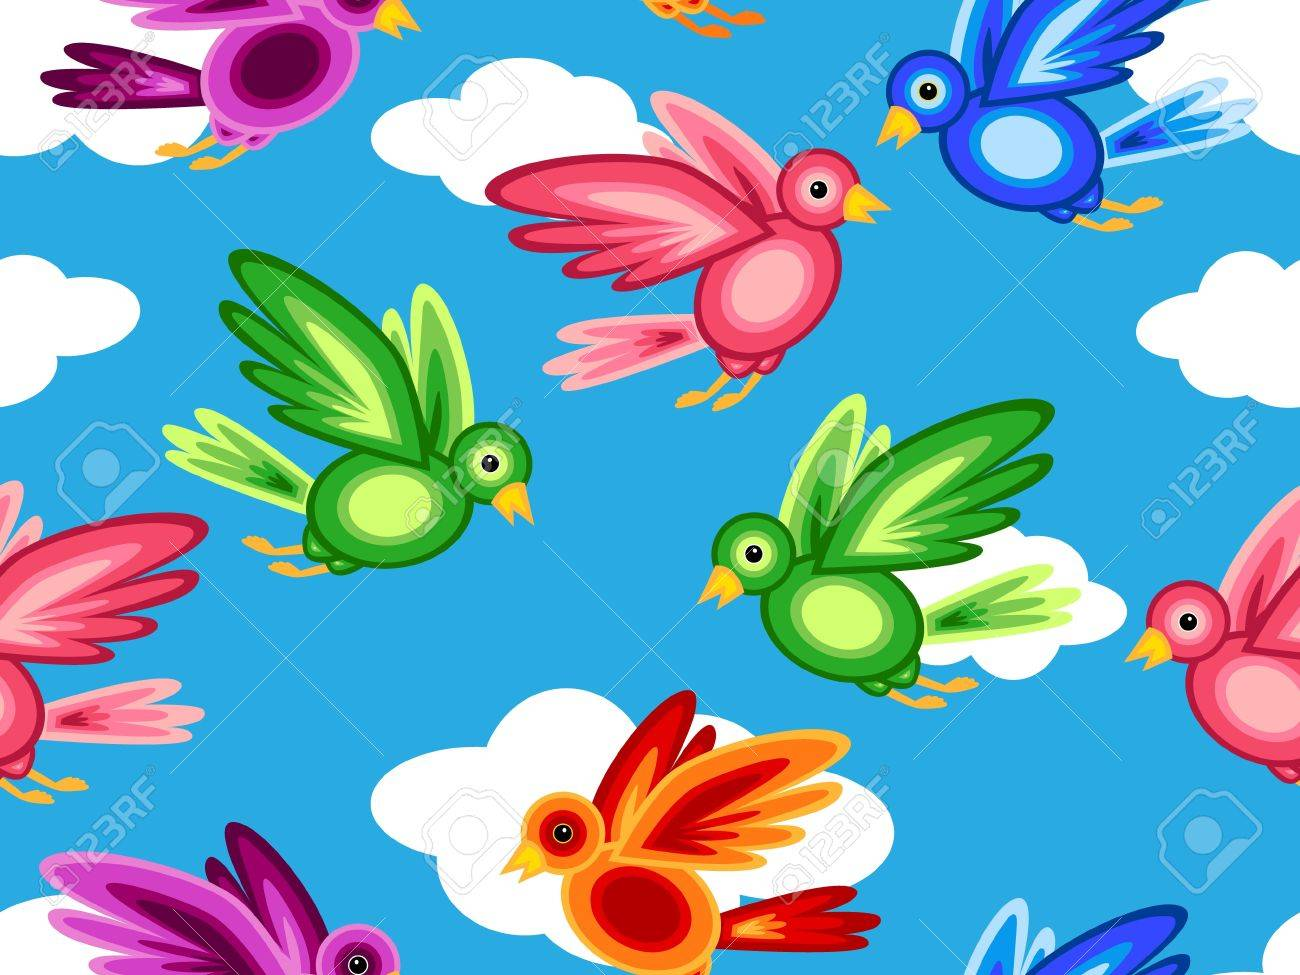 Seamless Pattern Of Graphic Colorful Birds Made Of Shapes Flying Royalty Free Cliparts Vectors And Stock Illustration Image 10529228